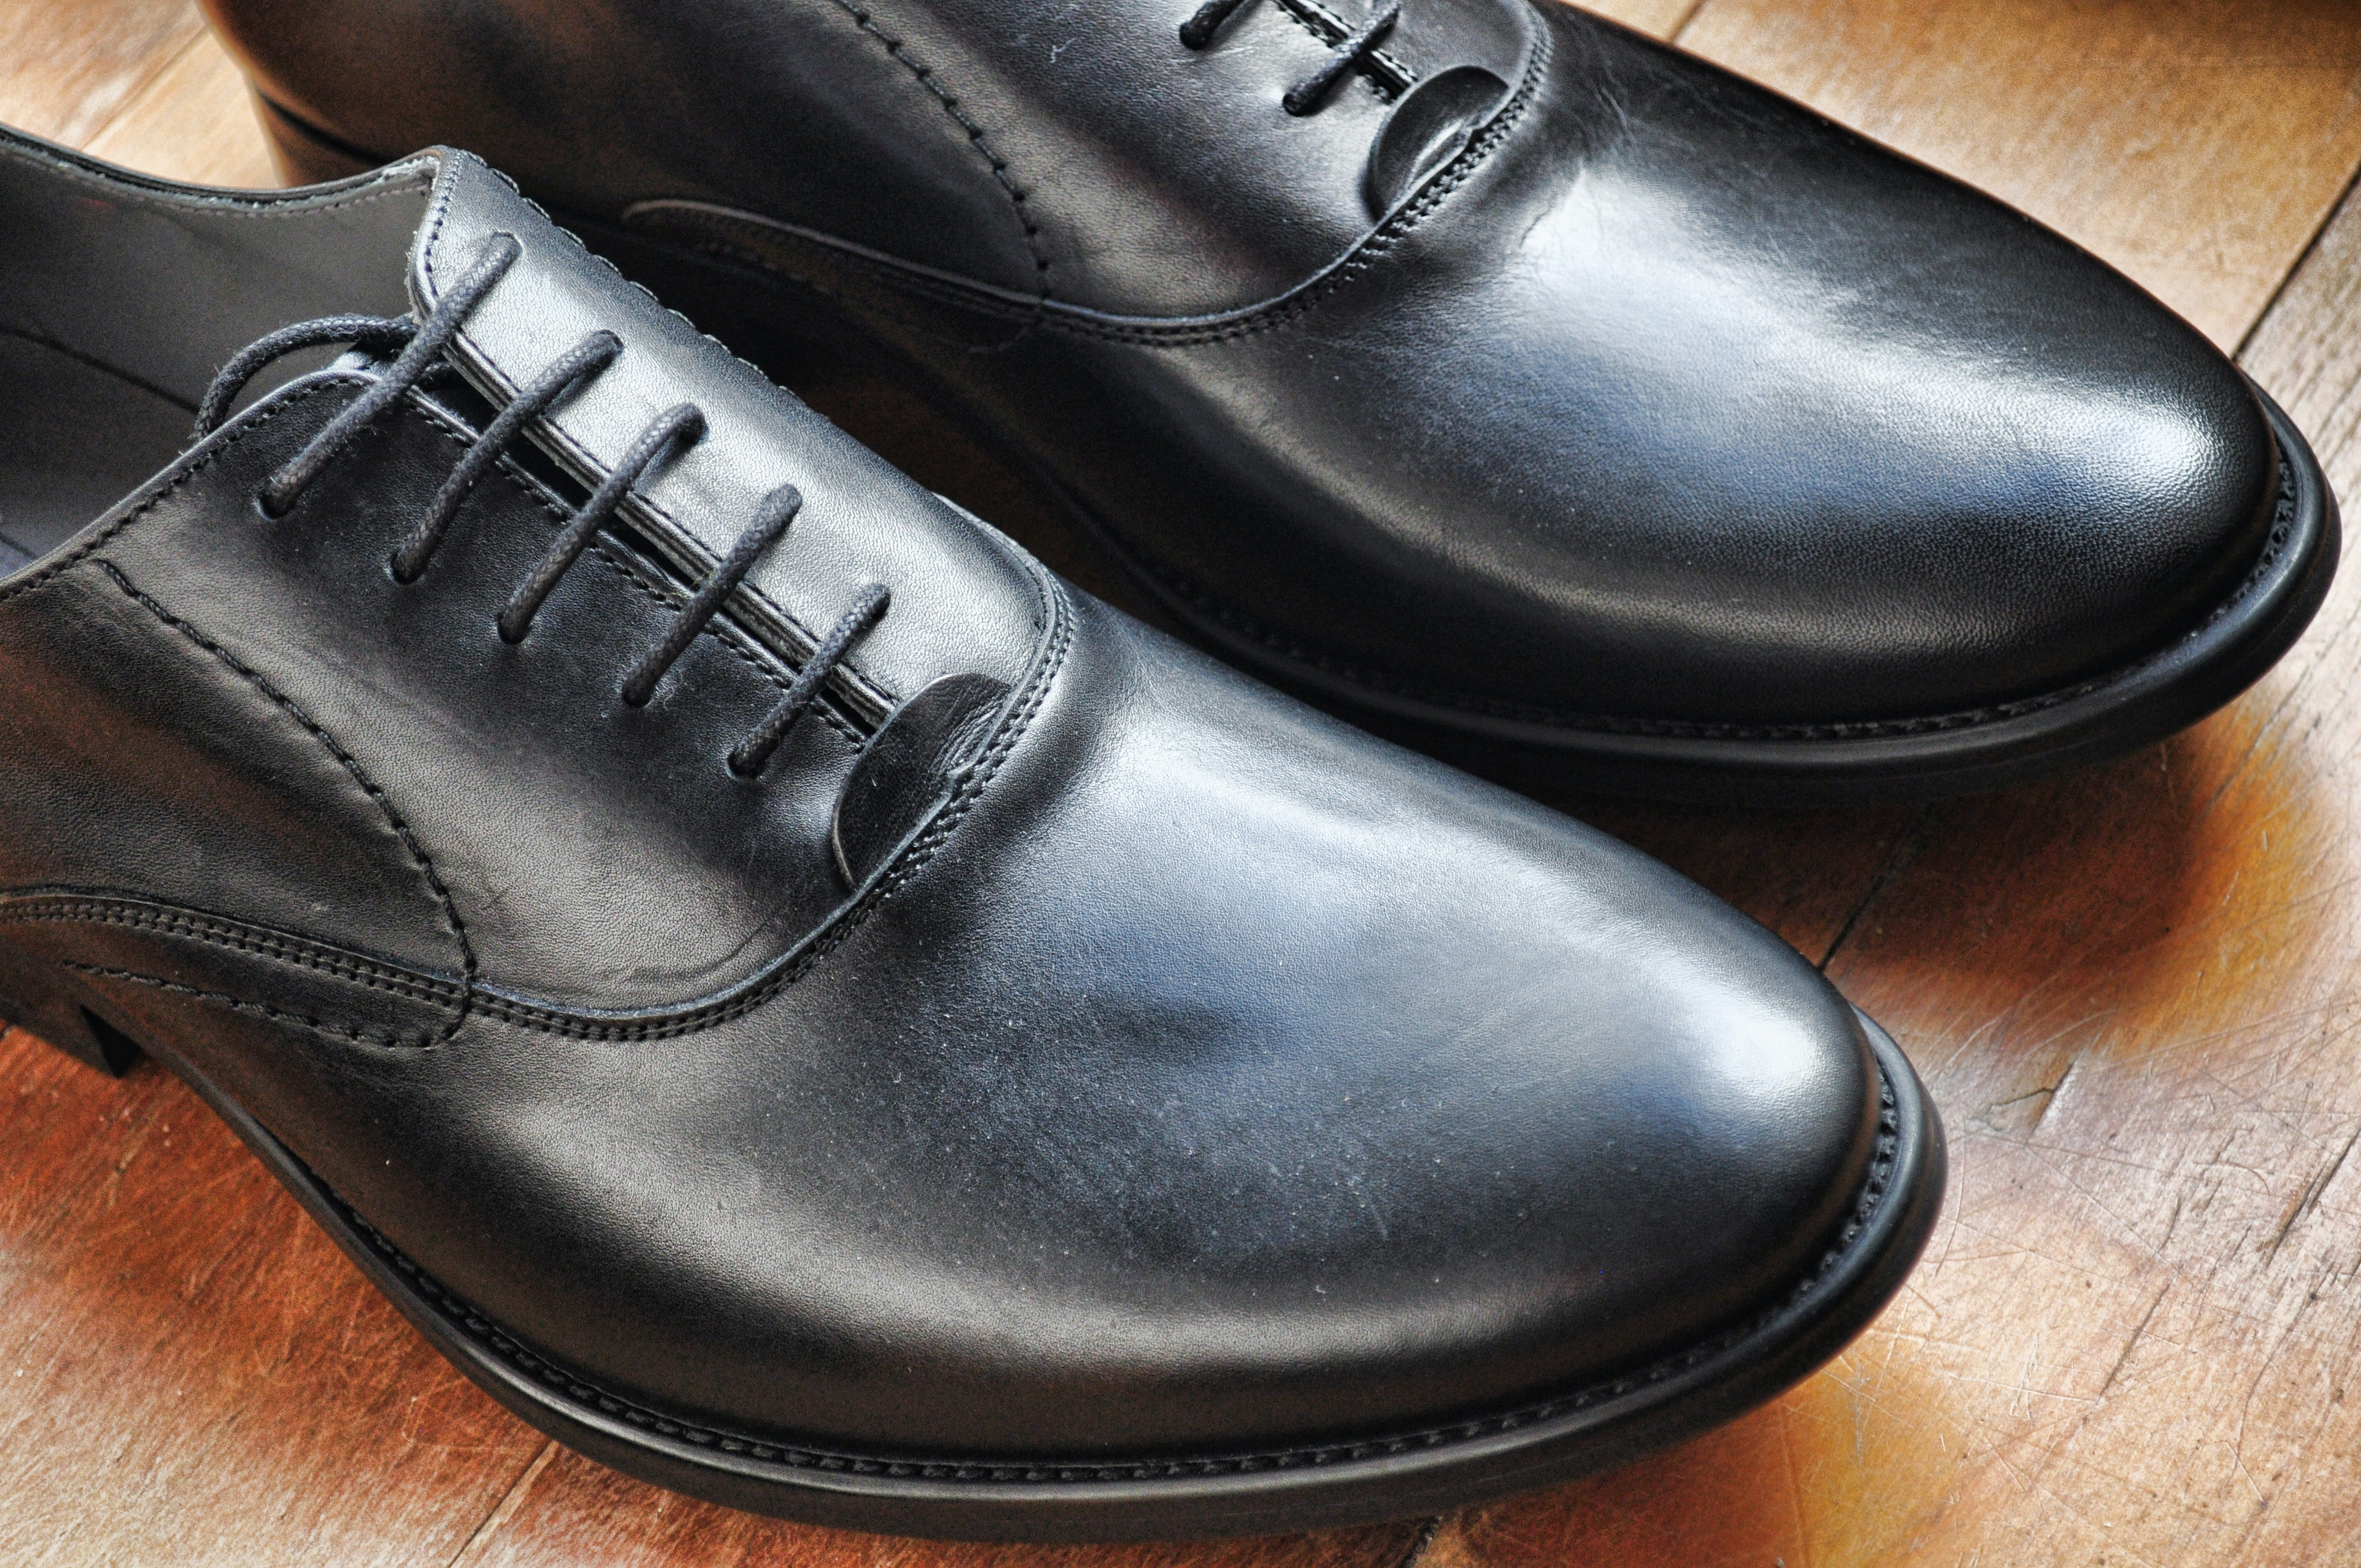 Pair of black dress shoes on top of wooden surface.